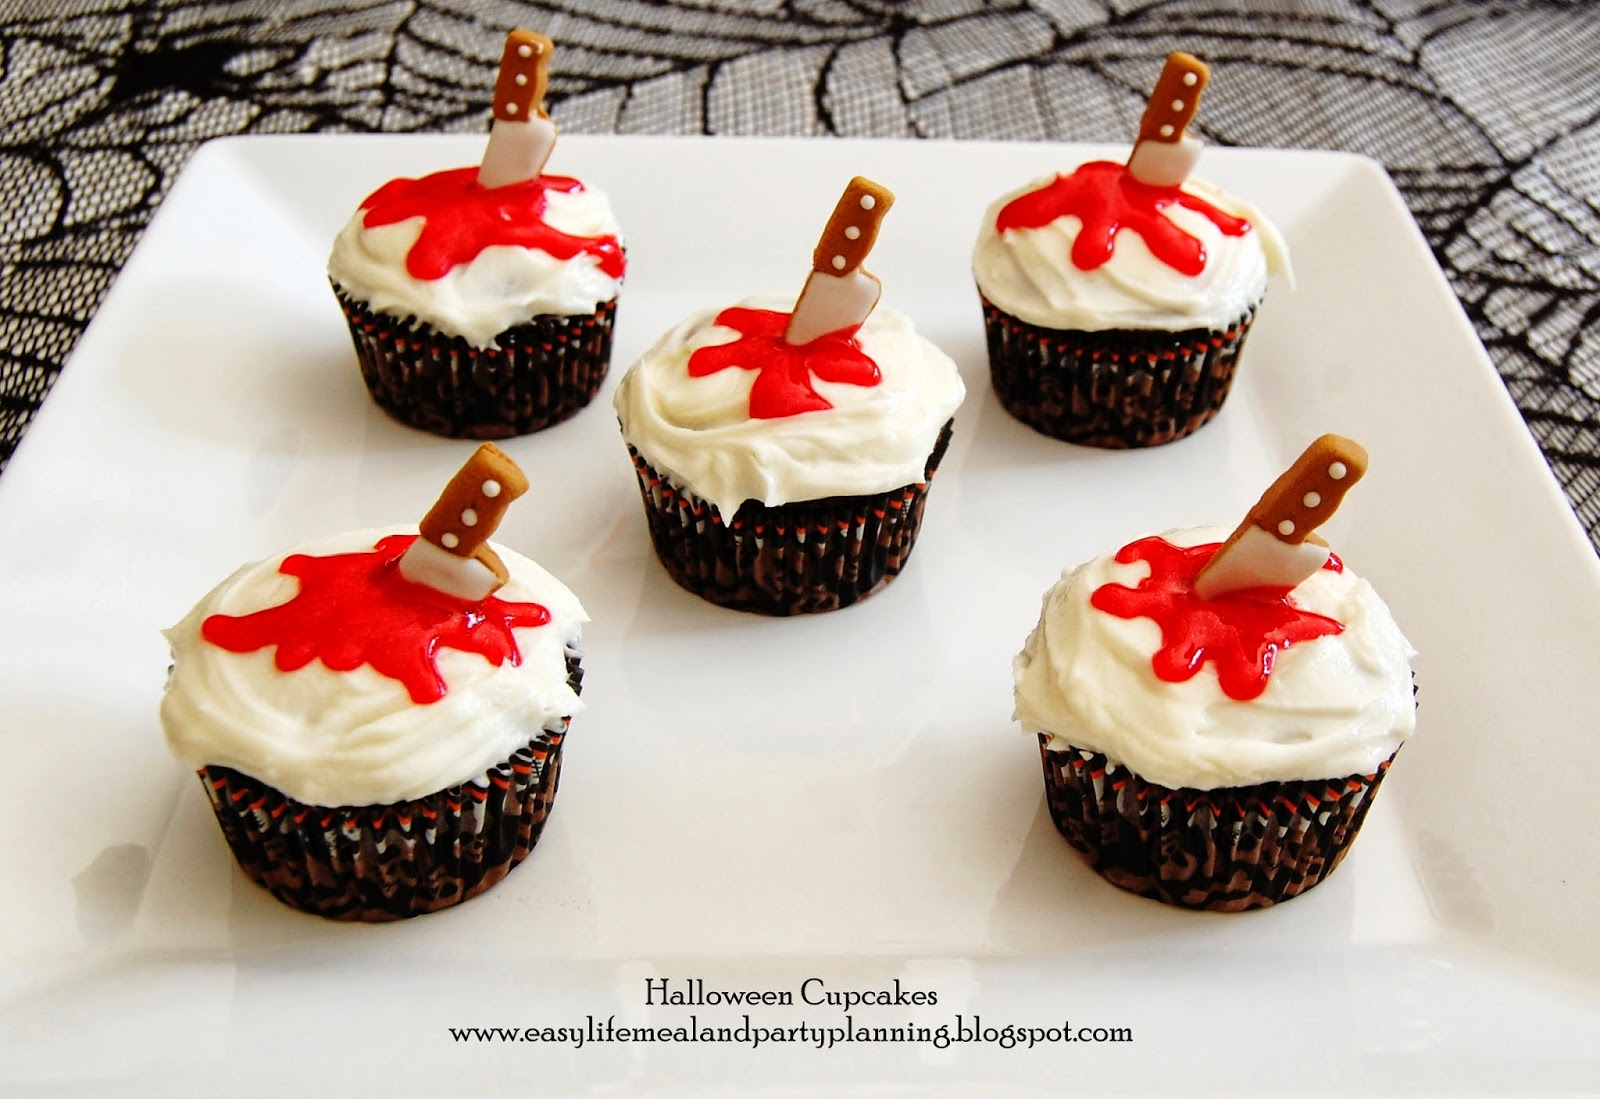 Halloween Cupcake Cake Decorating Ideas : Easy Life Meal and Party Planning: Halloween Cupcake Toppers